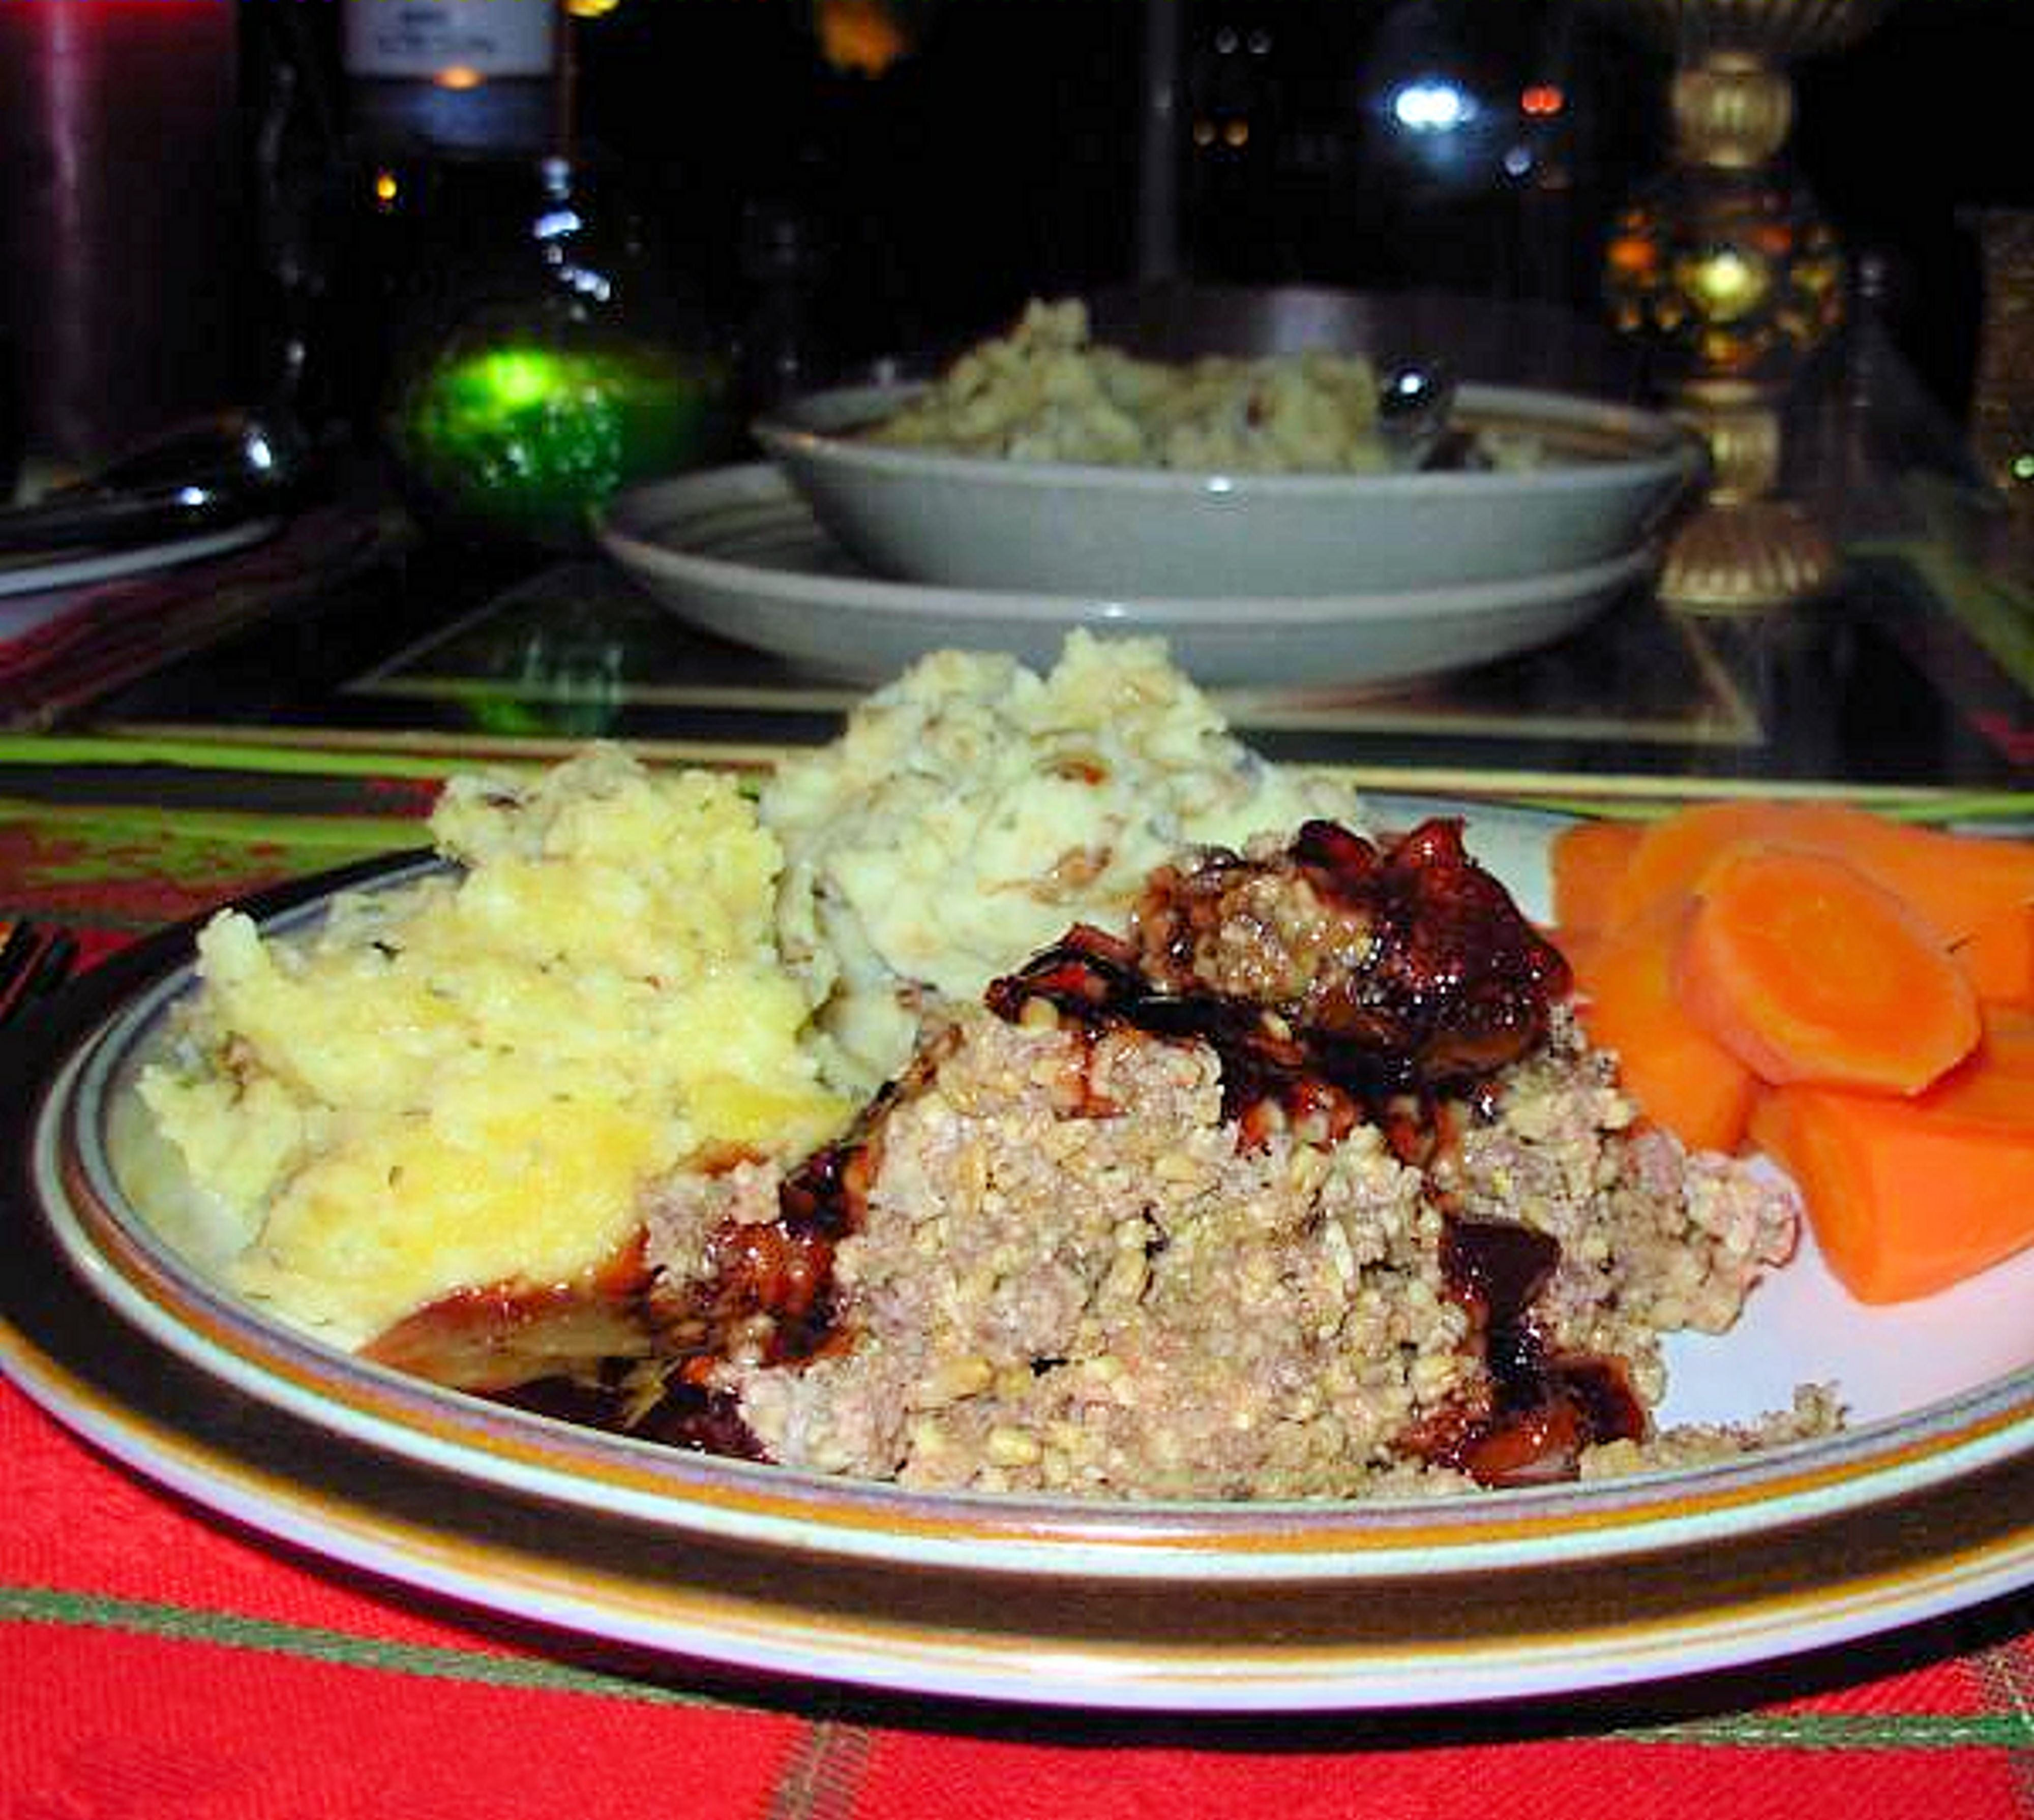 Haggis, Skirlie Mash, Neeps and Tatties